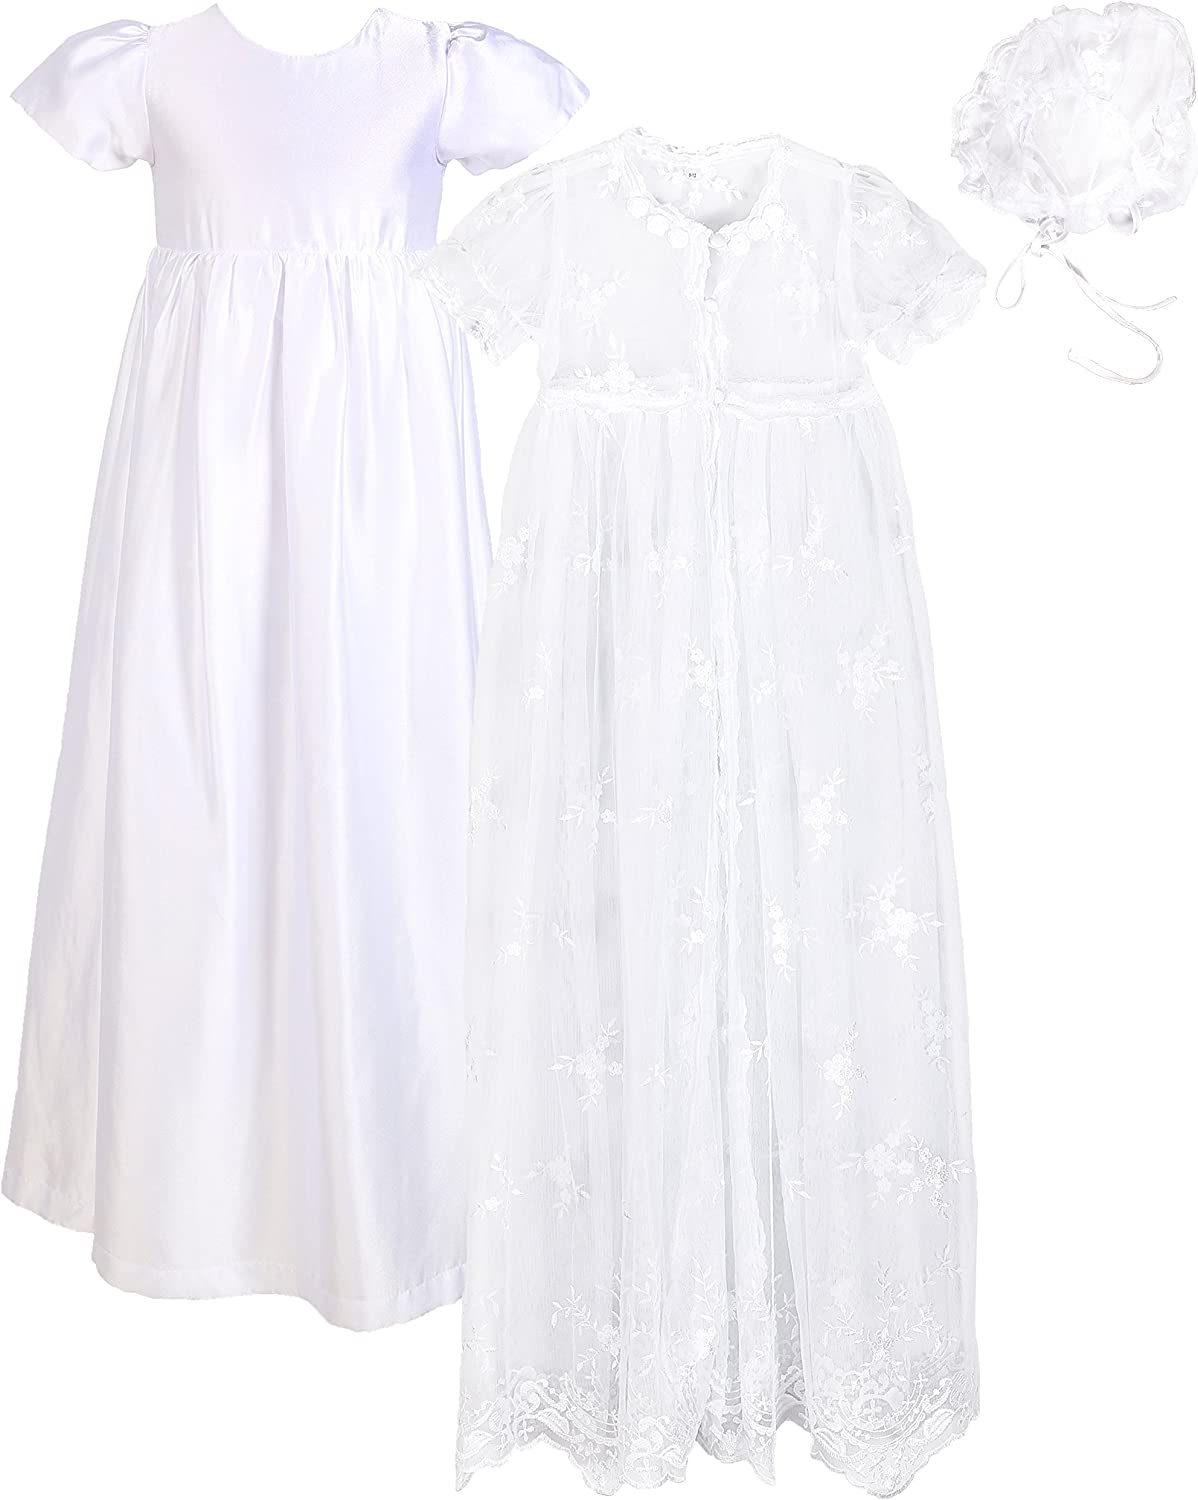 NIMBLE Baby Girls Christening Lace Mesh Dress Set with Headband for 0-12 Months